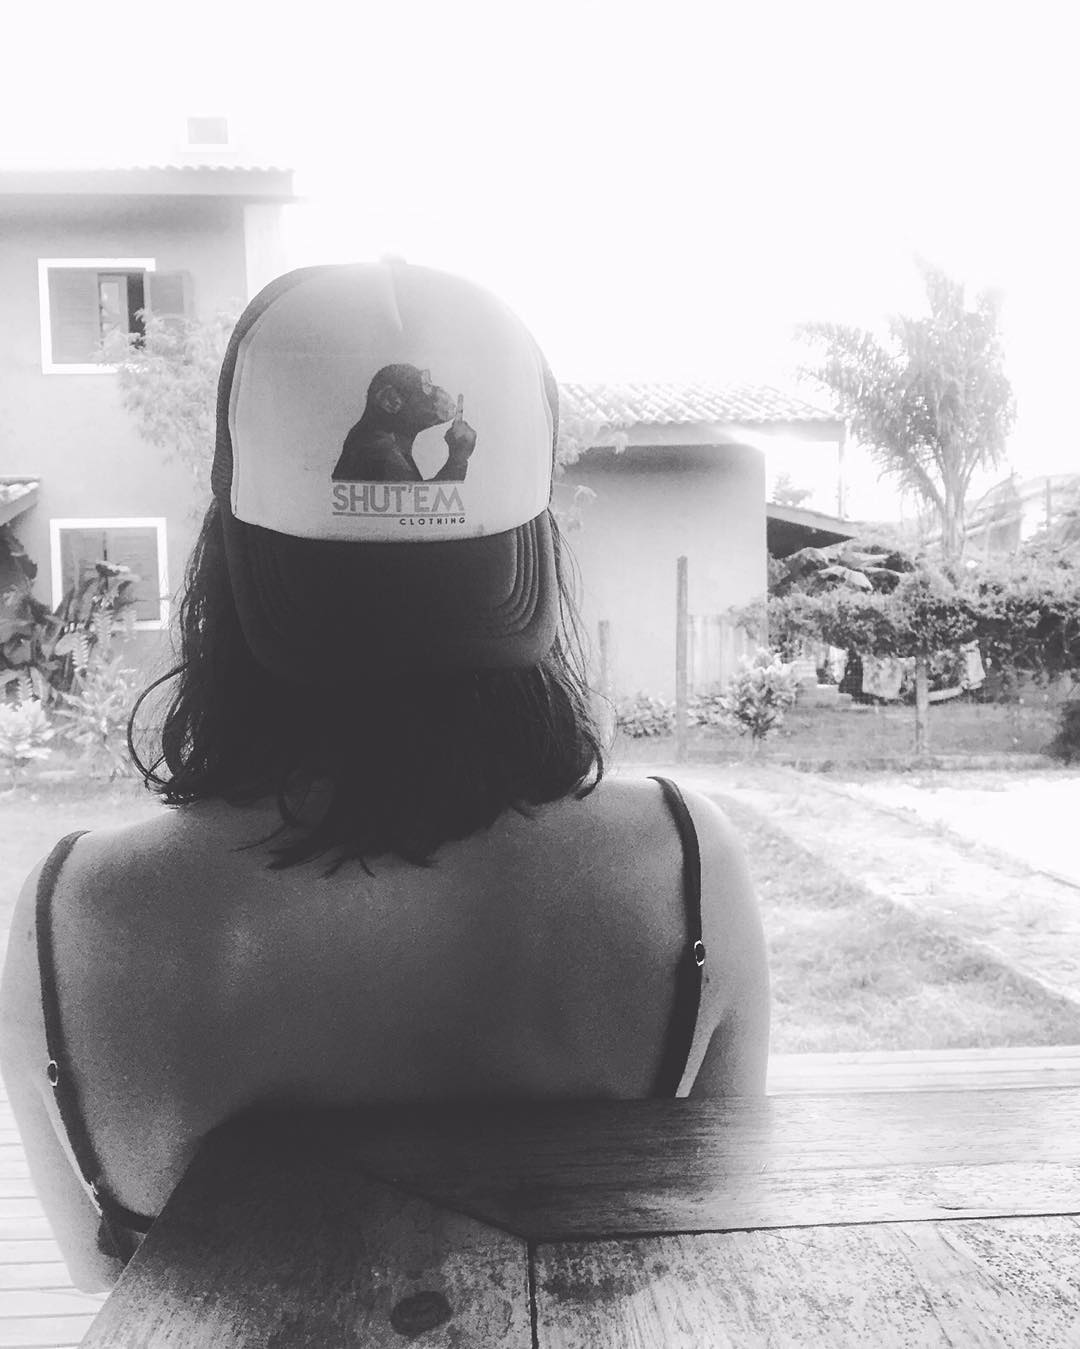 Shut'Em desde Campeche, Florianópolis! #summer #new #outfit #girl #love #caps #shutem #clothing #hot